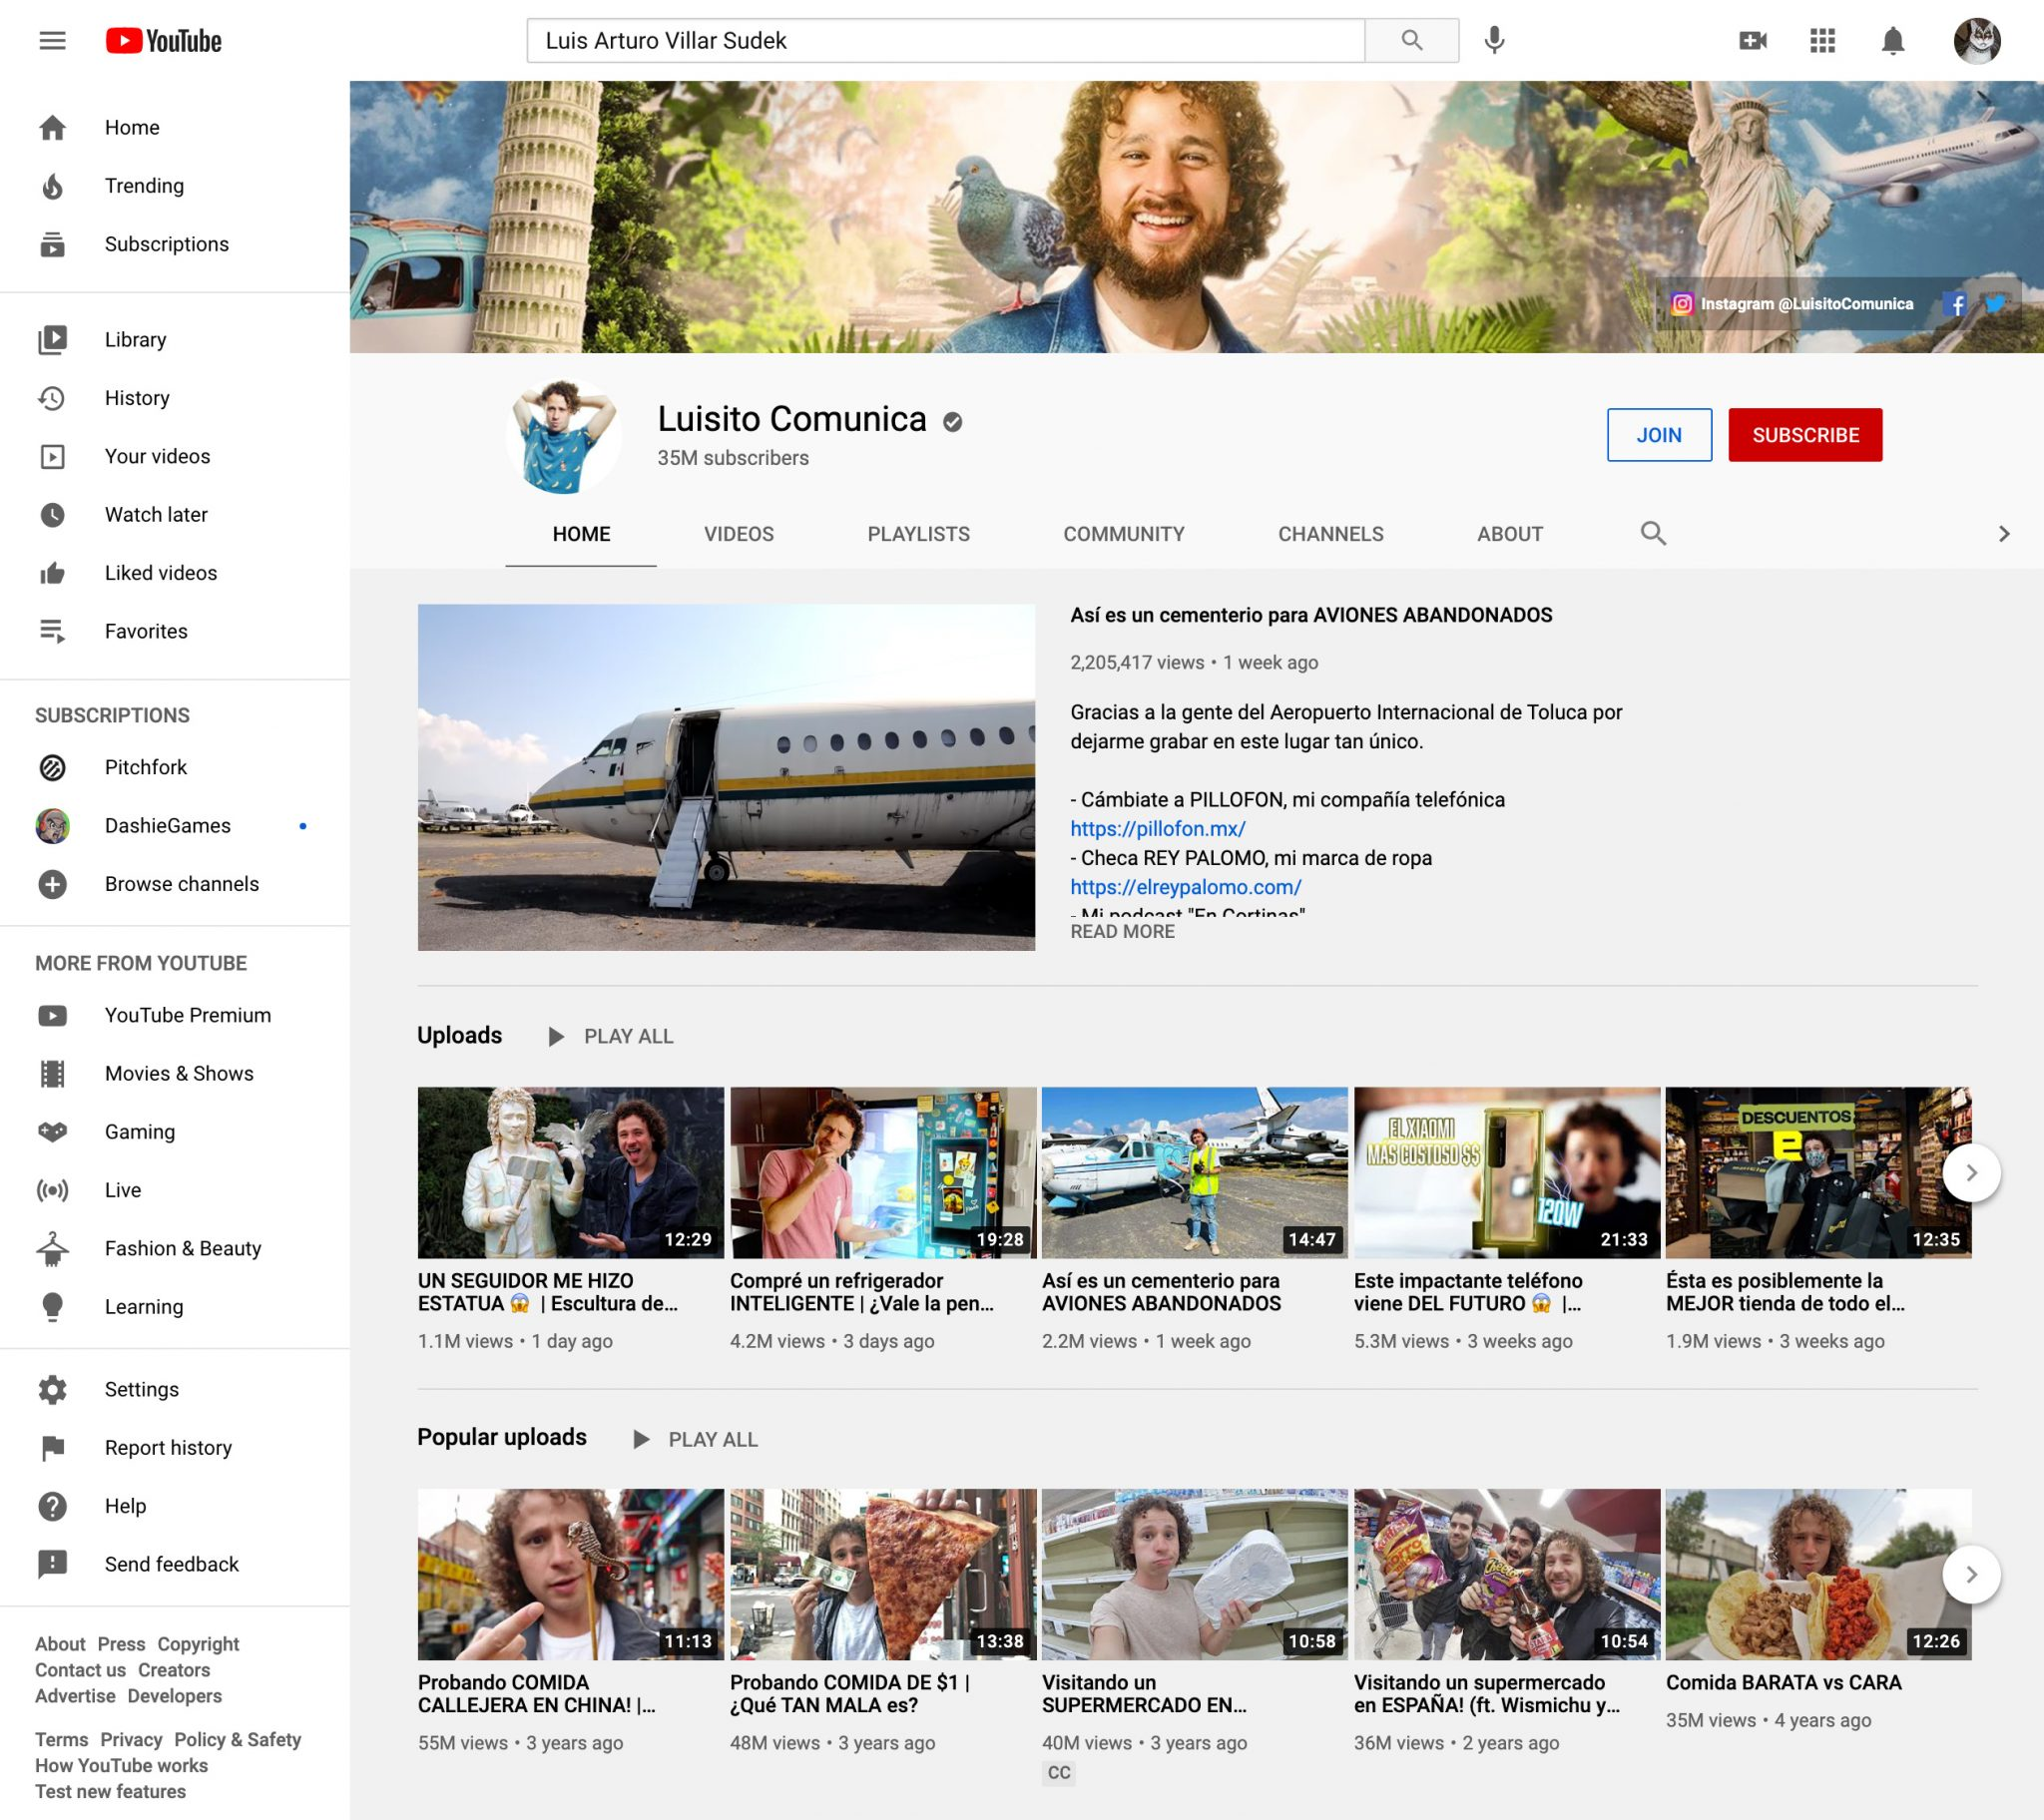 luisto comunica youtube influencer page